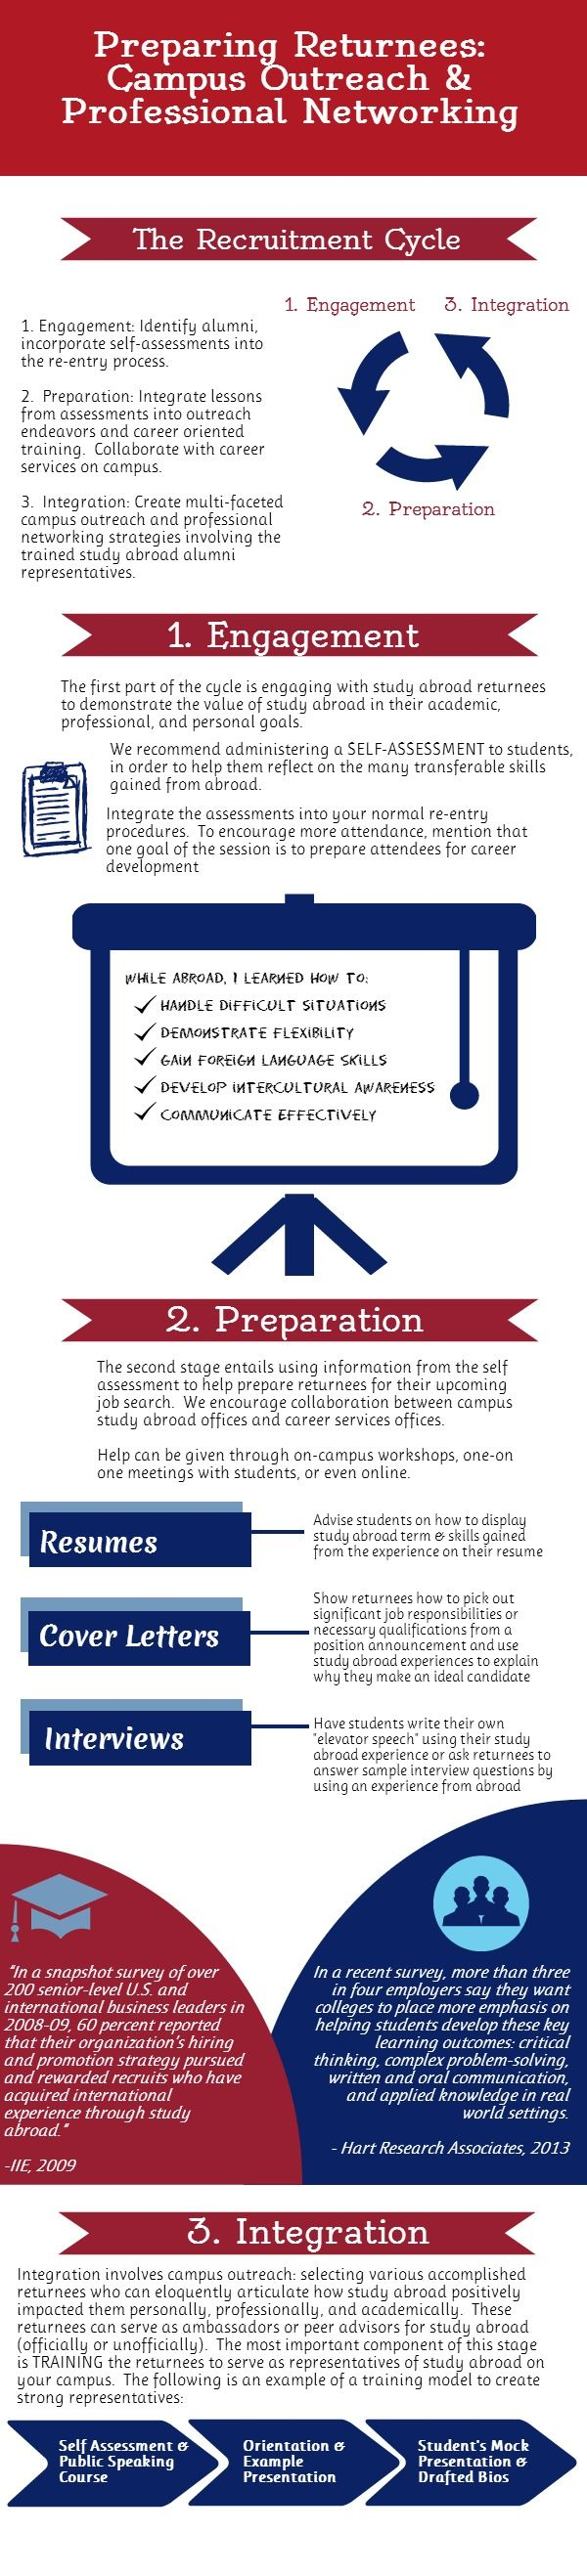 Preparing Returnees: Campus Outreach & Professional Networking | #infographics made in @Piktochart